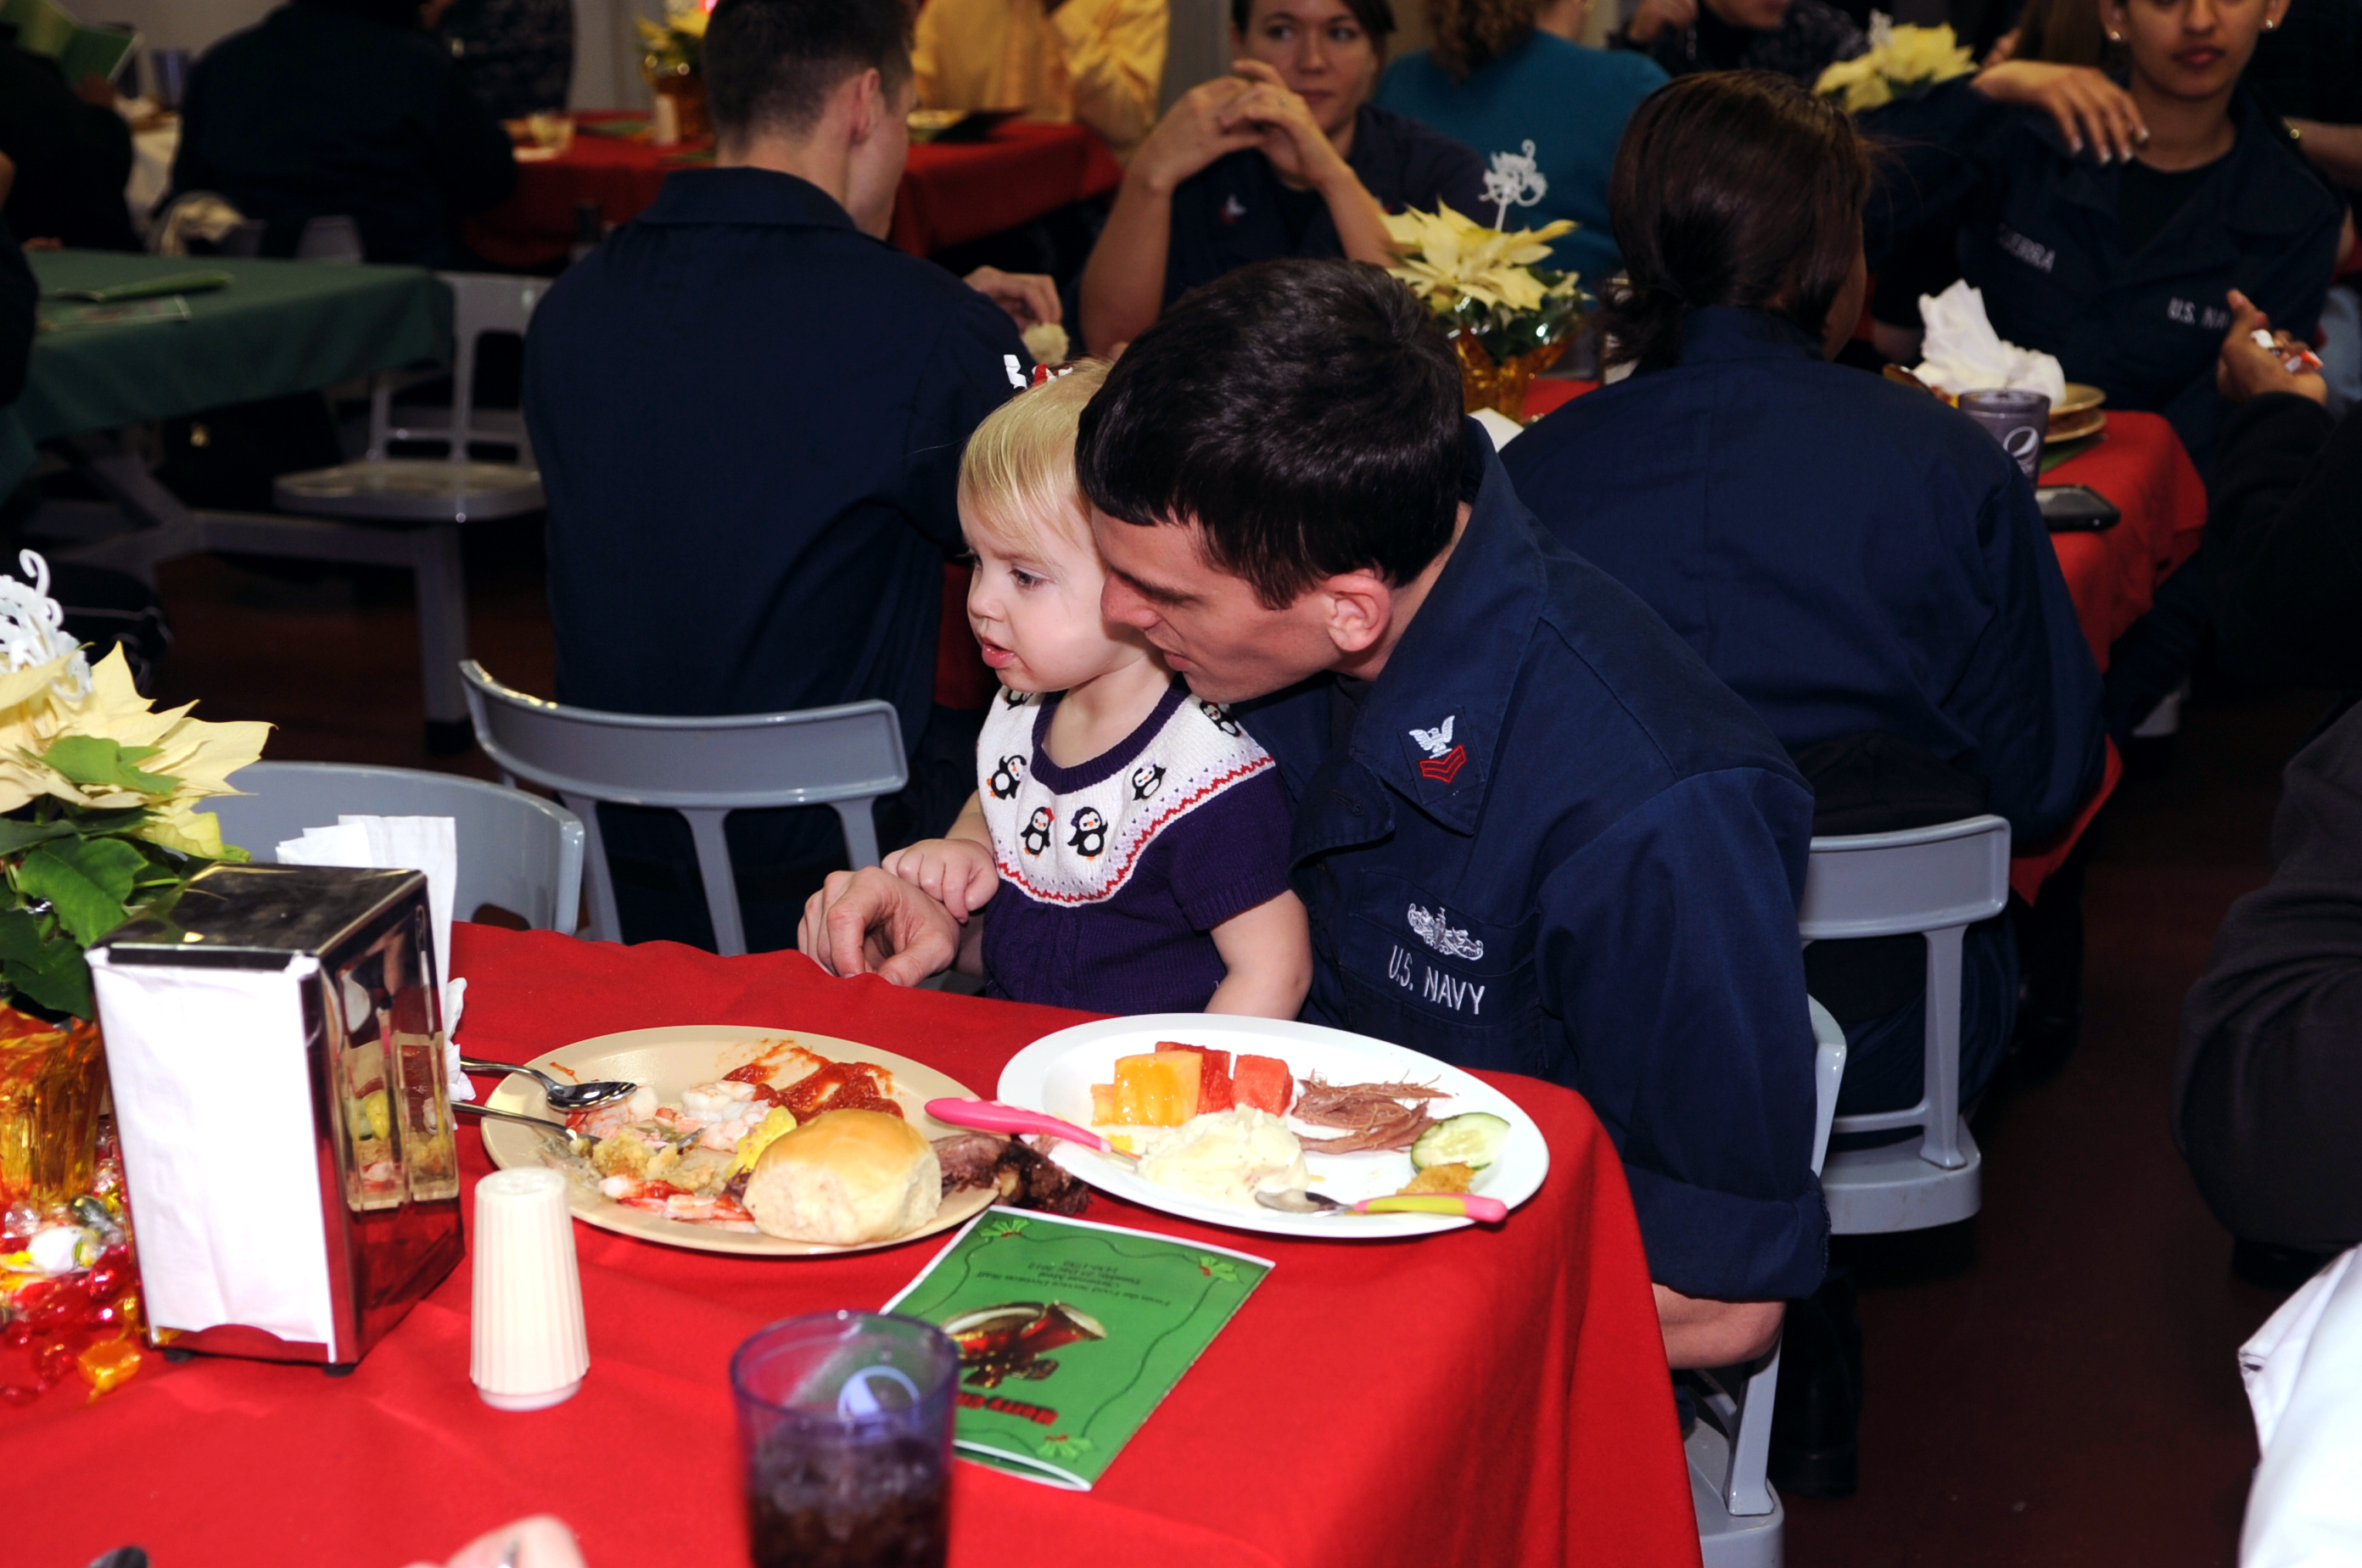 aboard the aircraft carrier USS George H.W. Bush (CVN 77). George H.W. Bush is homeported in Norfolk, Va.